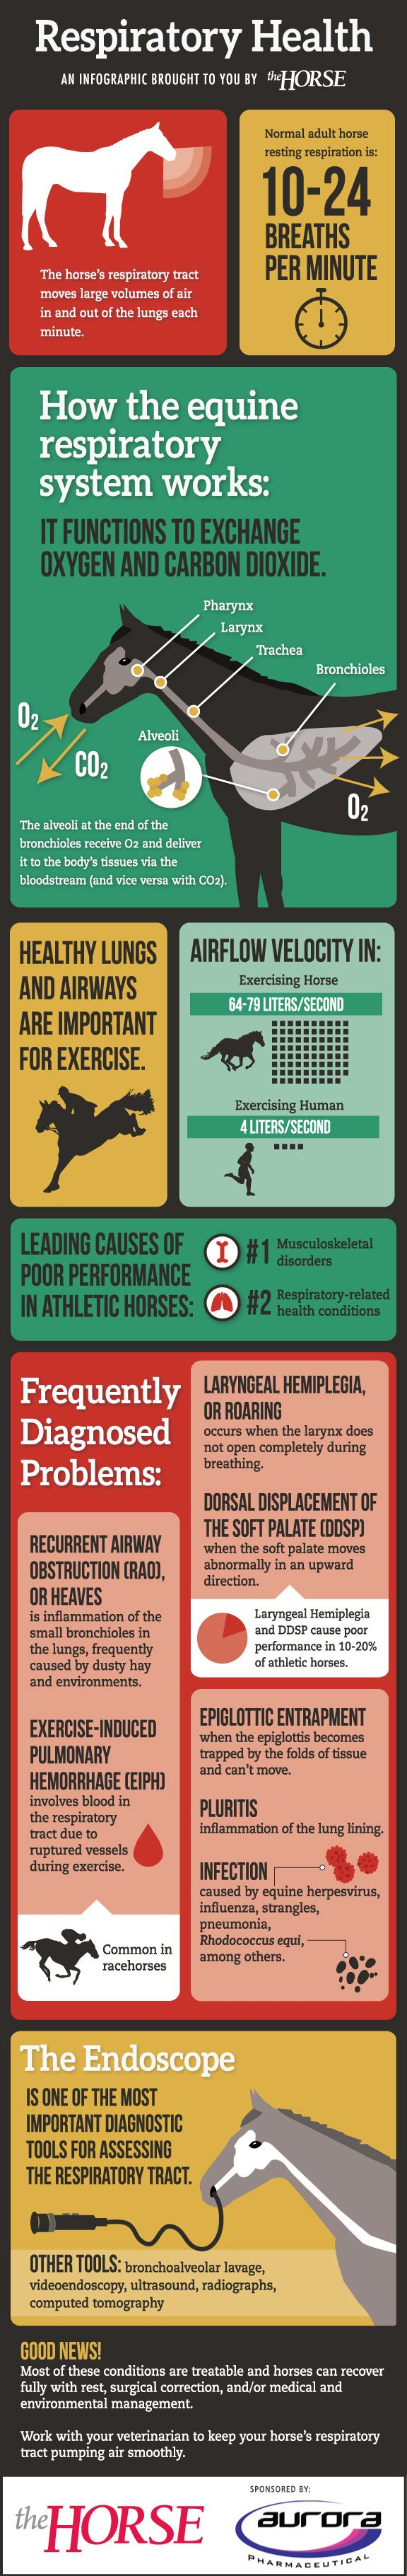 Equine Respiratory Health - TheHorse.com | Learn about how the horse's respiratory system works as well as frequently diagnosed respiratory problems in horses with this easy-to-follow visual guide, brought to you by TheHorse.com and Aurora Pharmaceutical. #horses #horsehealth